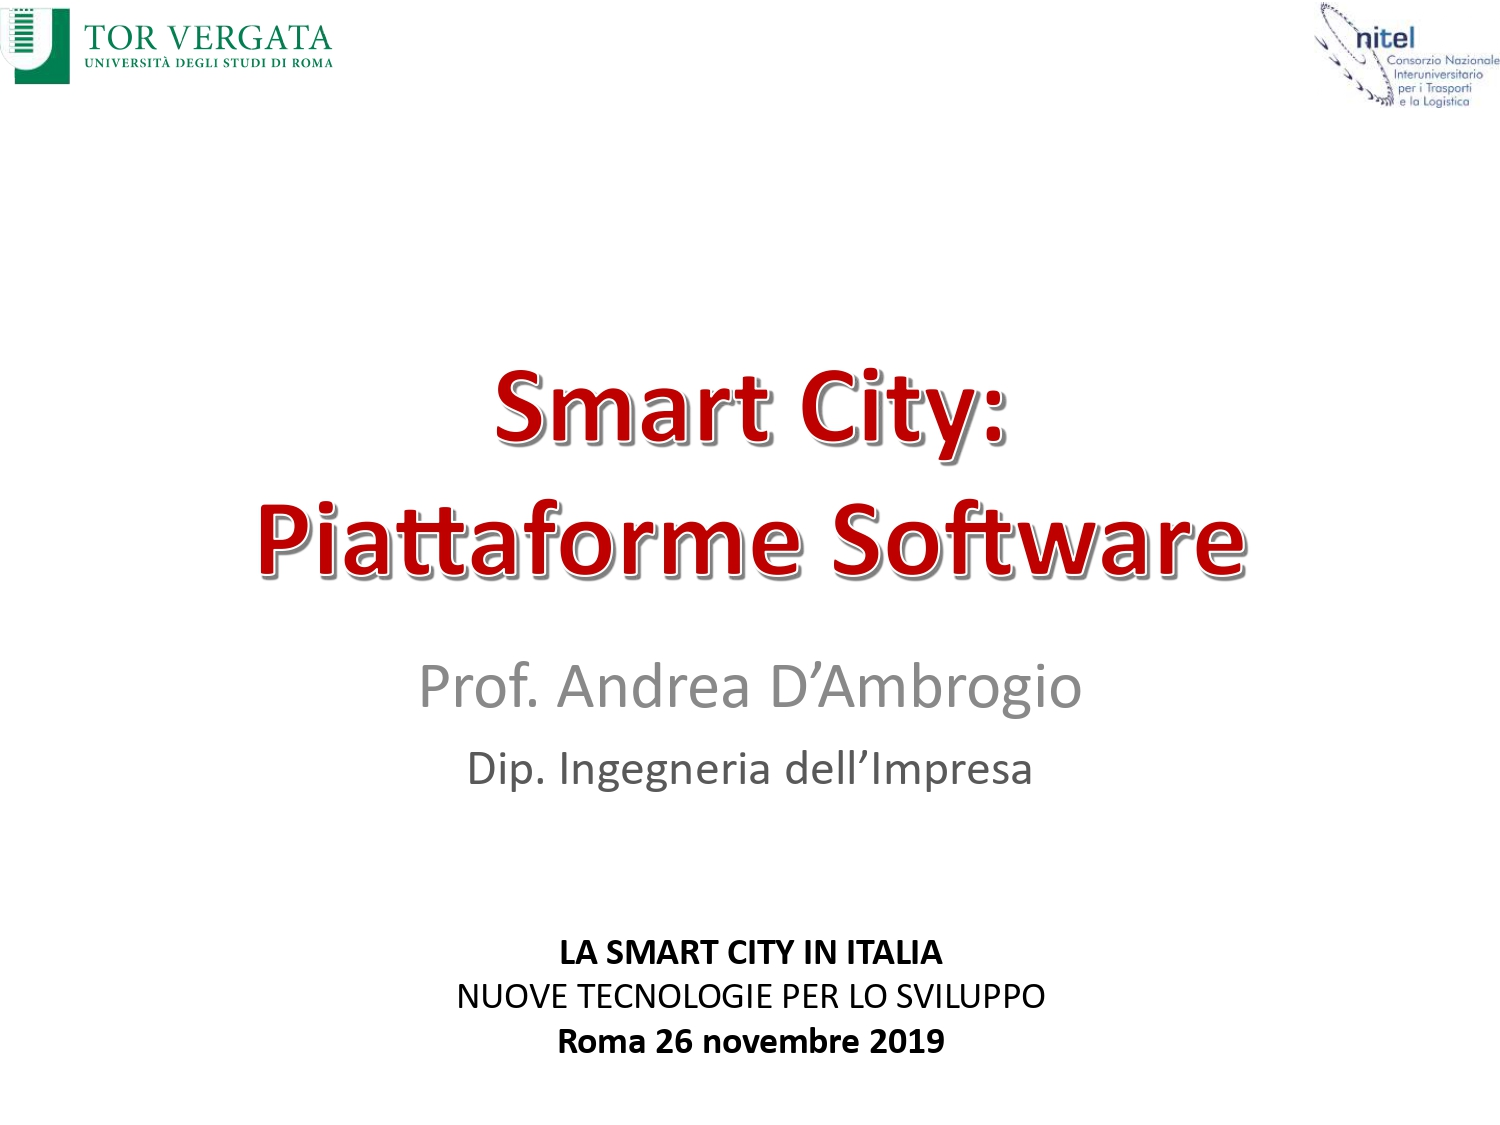 Smart city 26 novembre 2019 dambrogio_page-0001